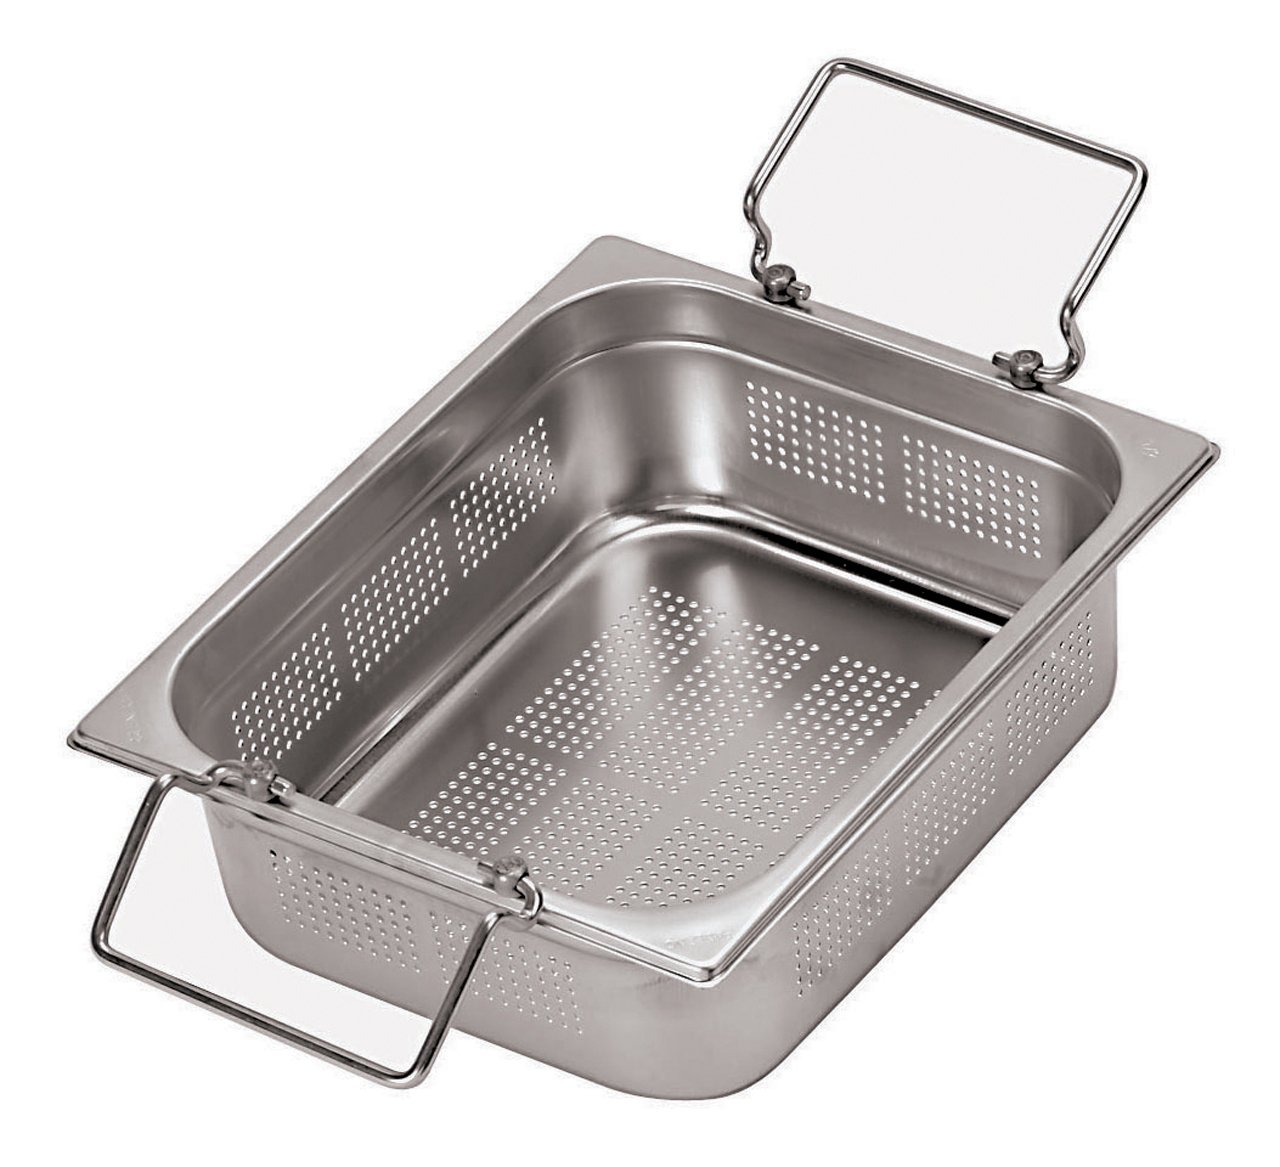 Paderno World Cuisine 12 1/2 inches by 10 1/2 inches Stainless-steel Perforated Hotel Pan with Folding Handles - 1/2 (depth: 6 inches)